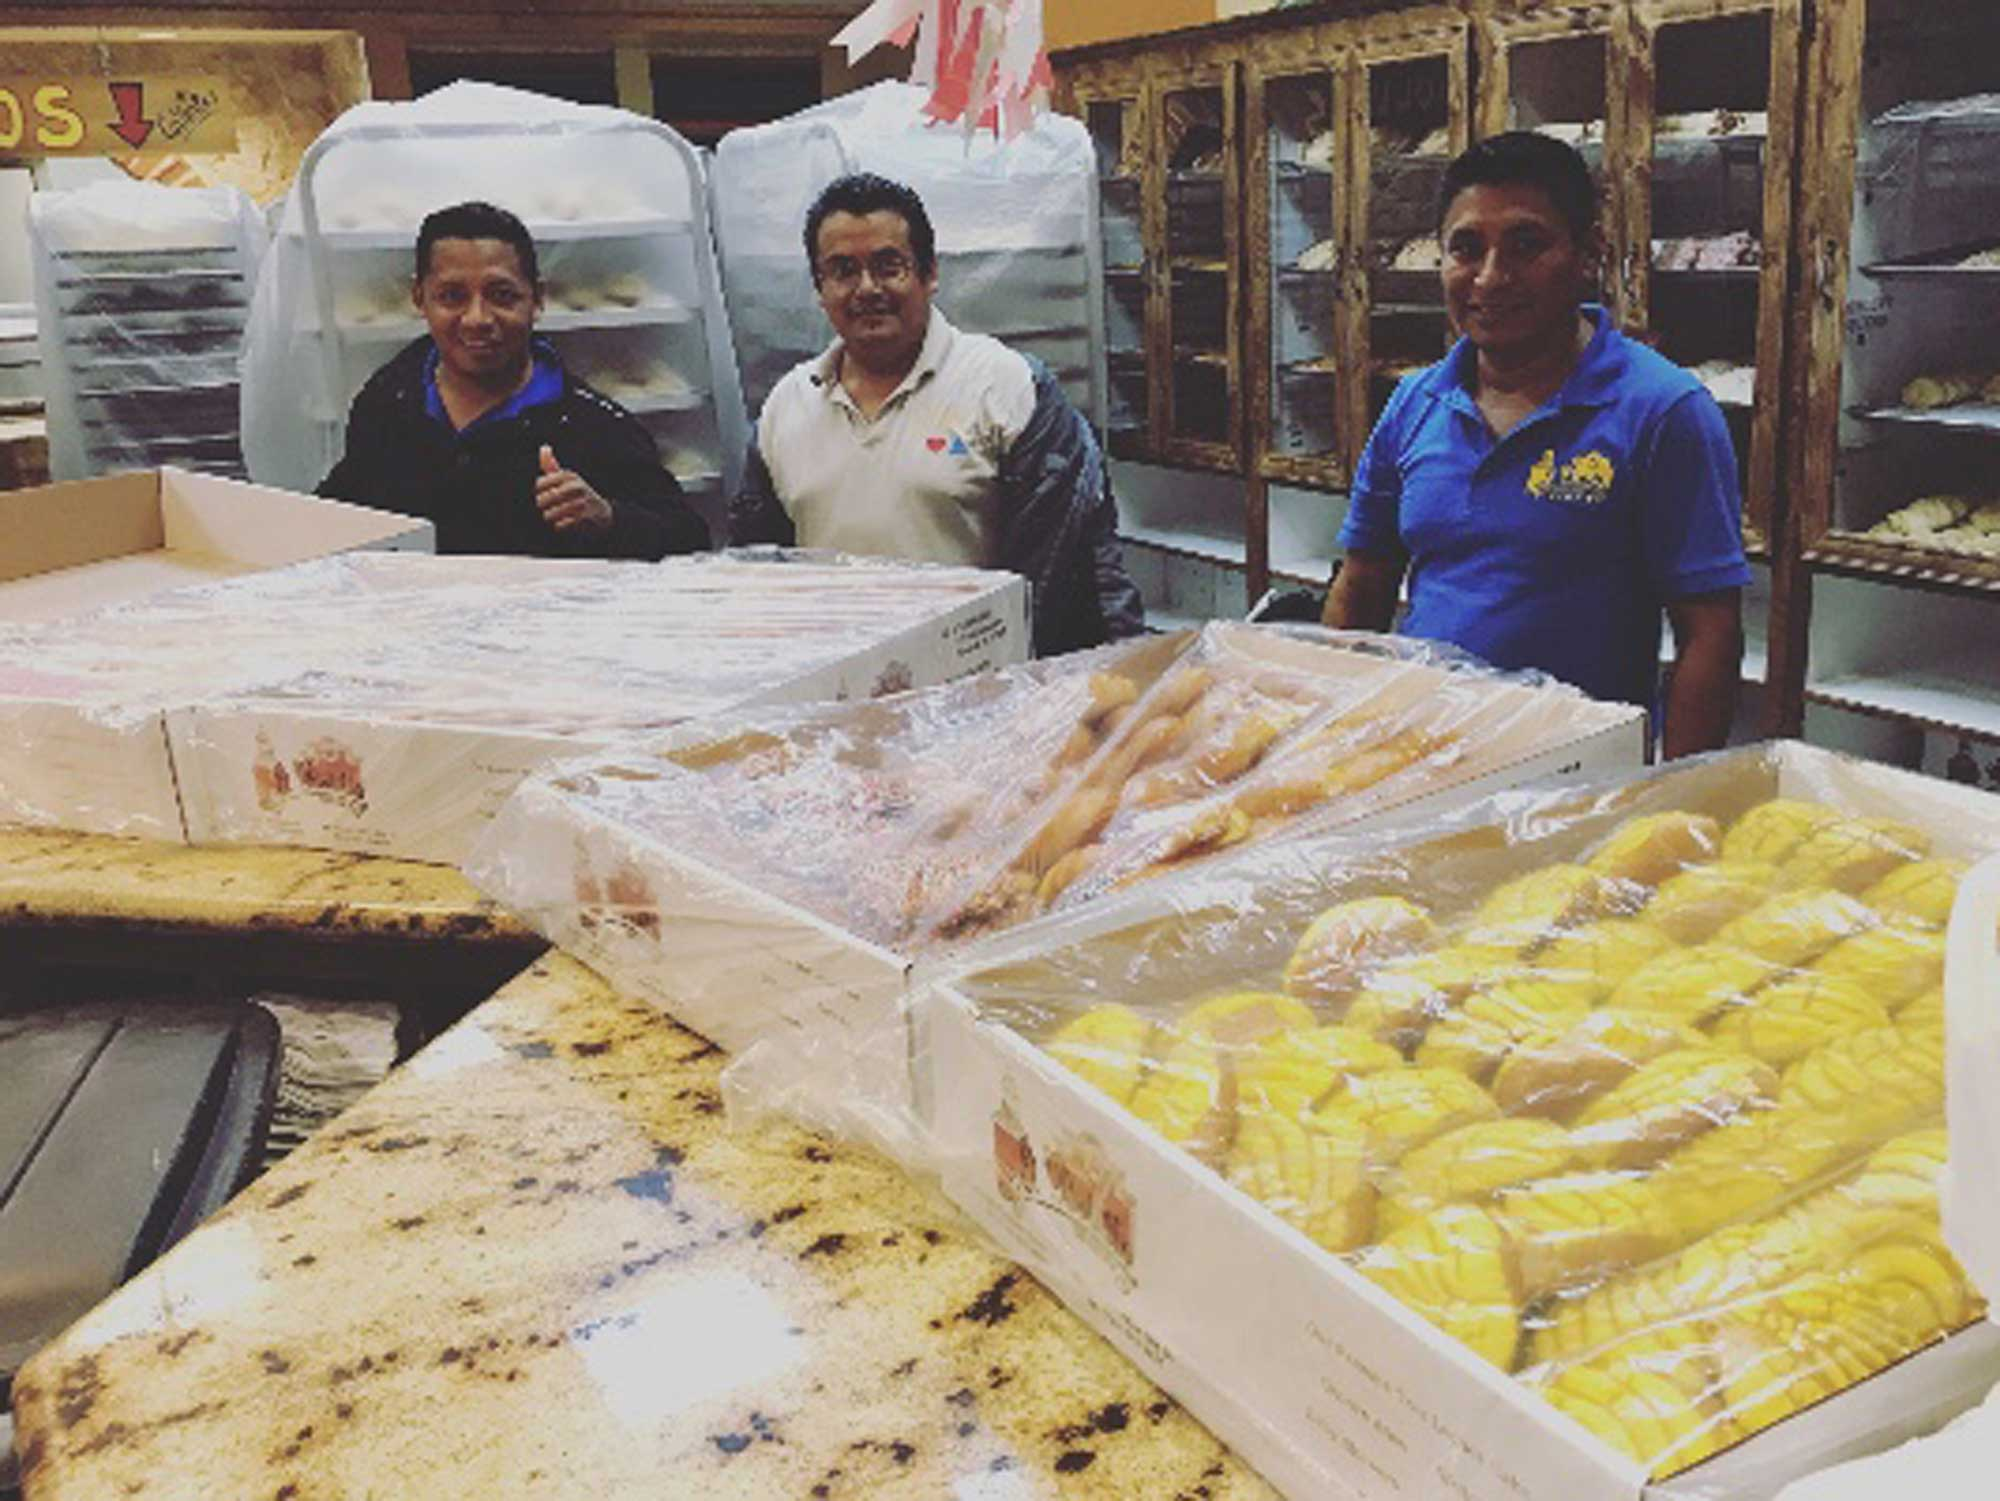 Trapped by Hurricane Harvey, These Bakers Made Thousands of Loaves of Bread for Those in Need